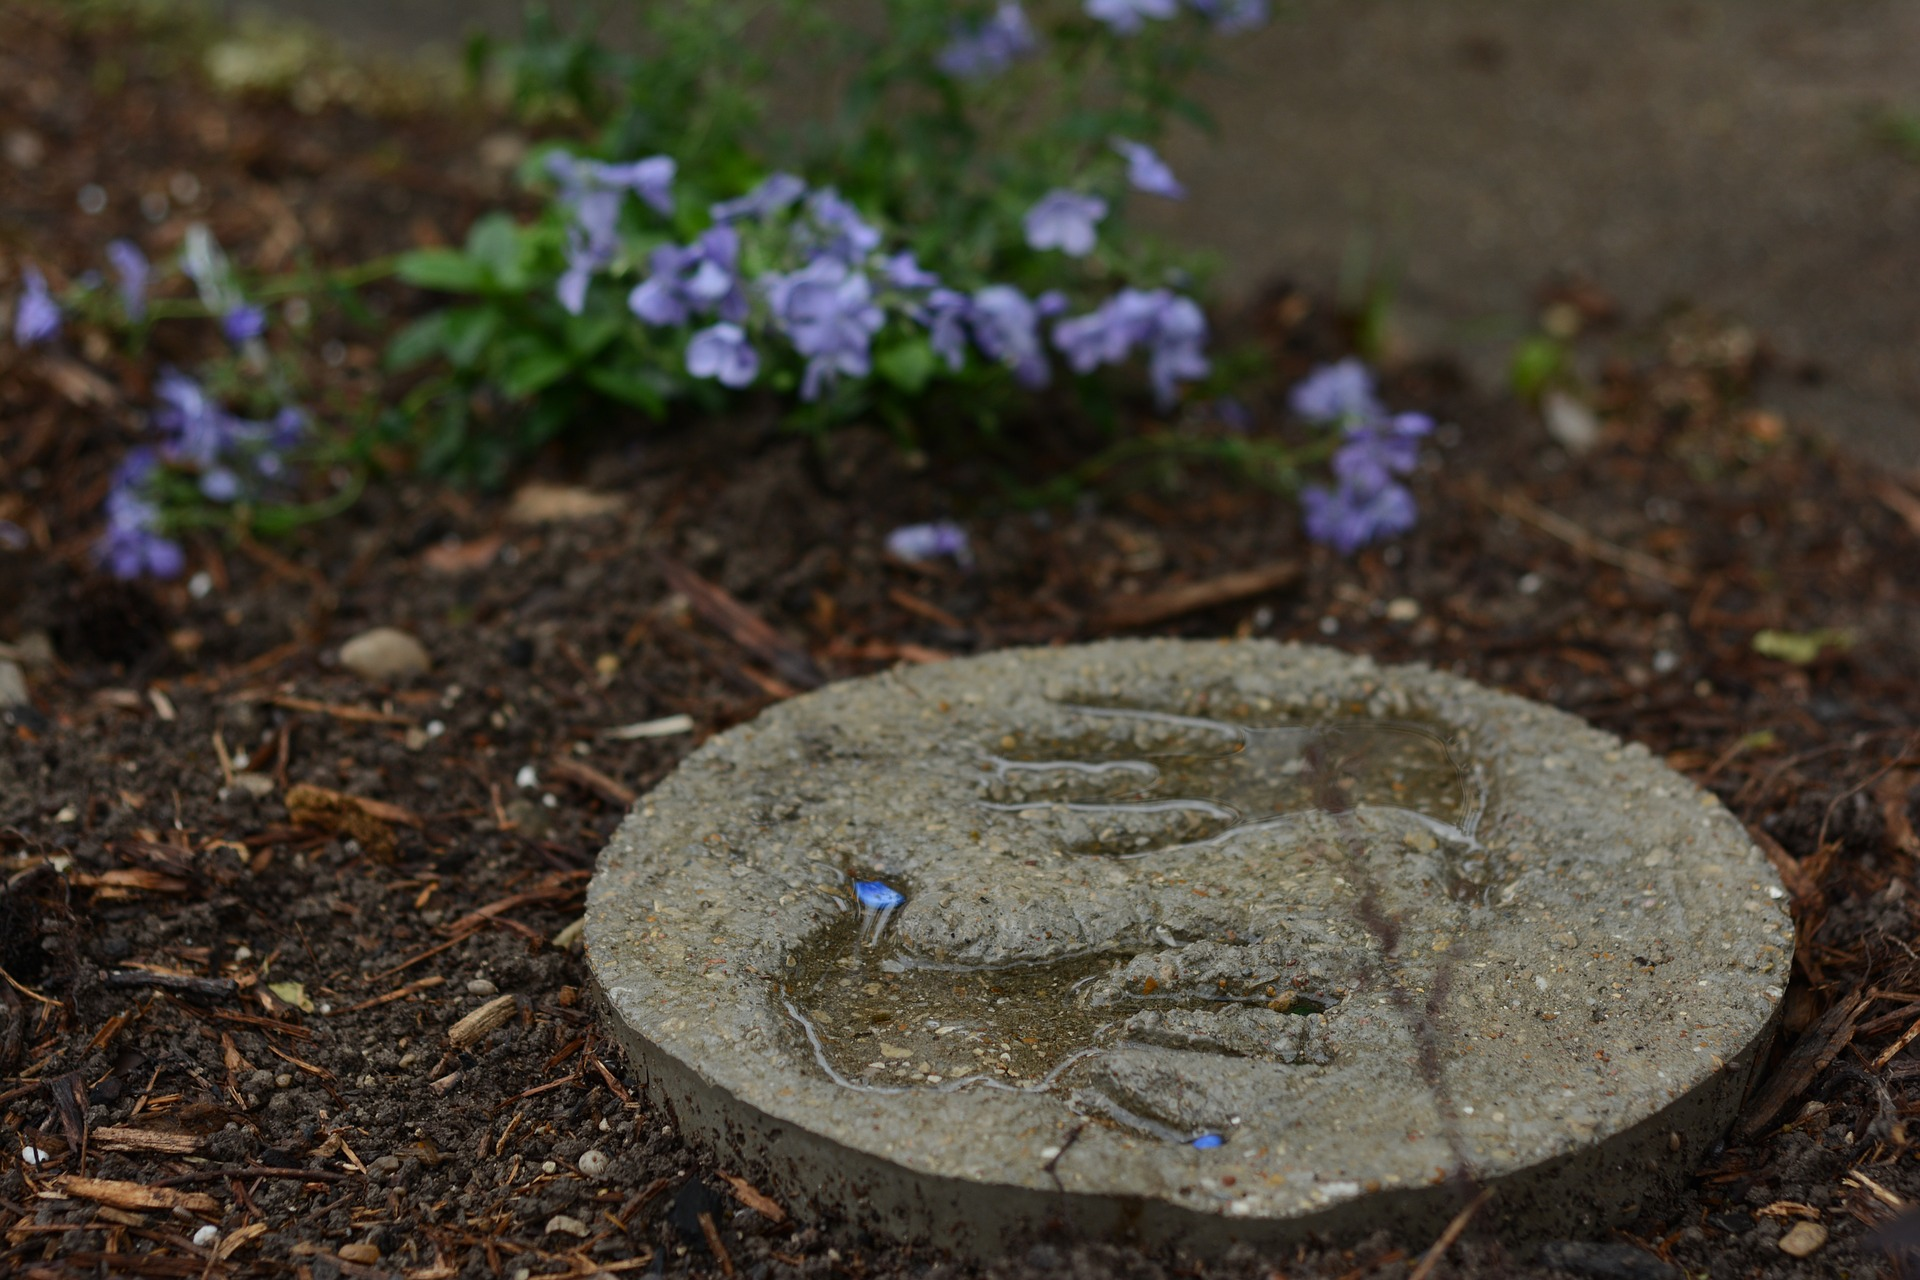 Handprints molded into a stepping stone in a garden.